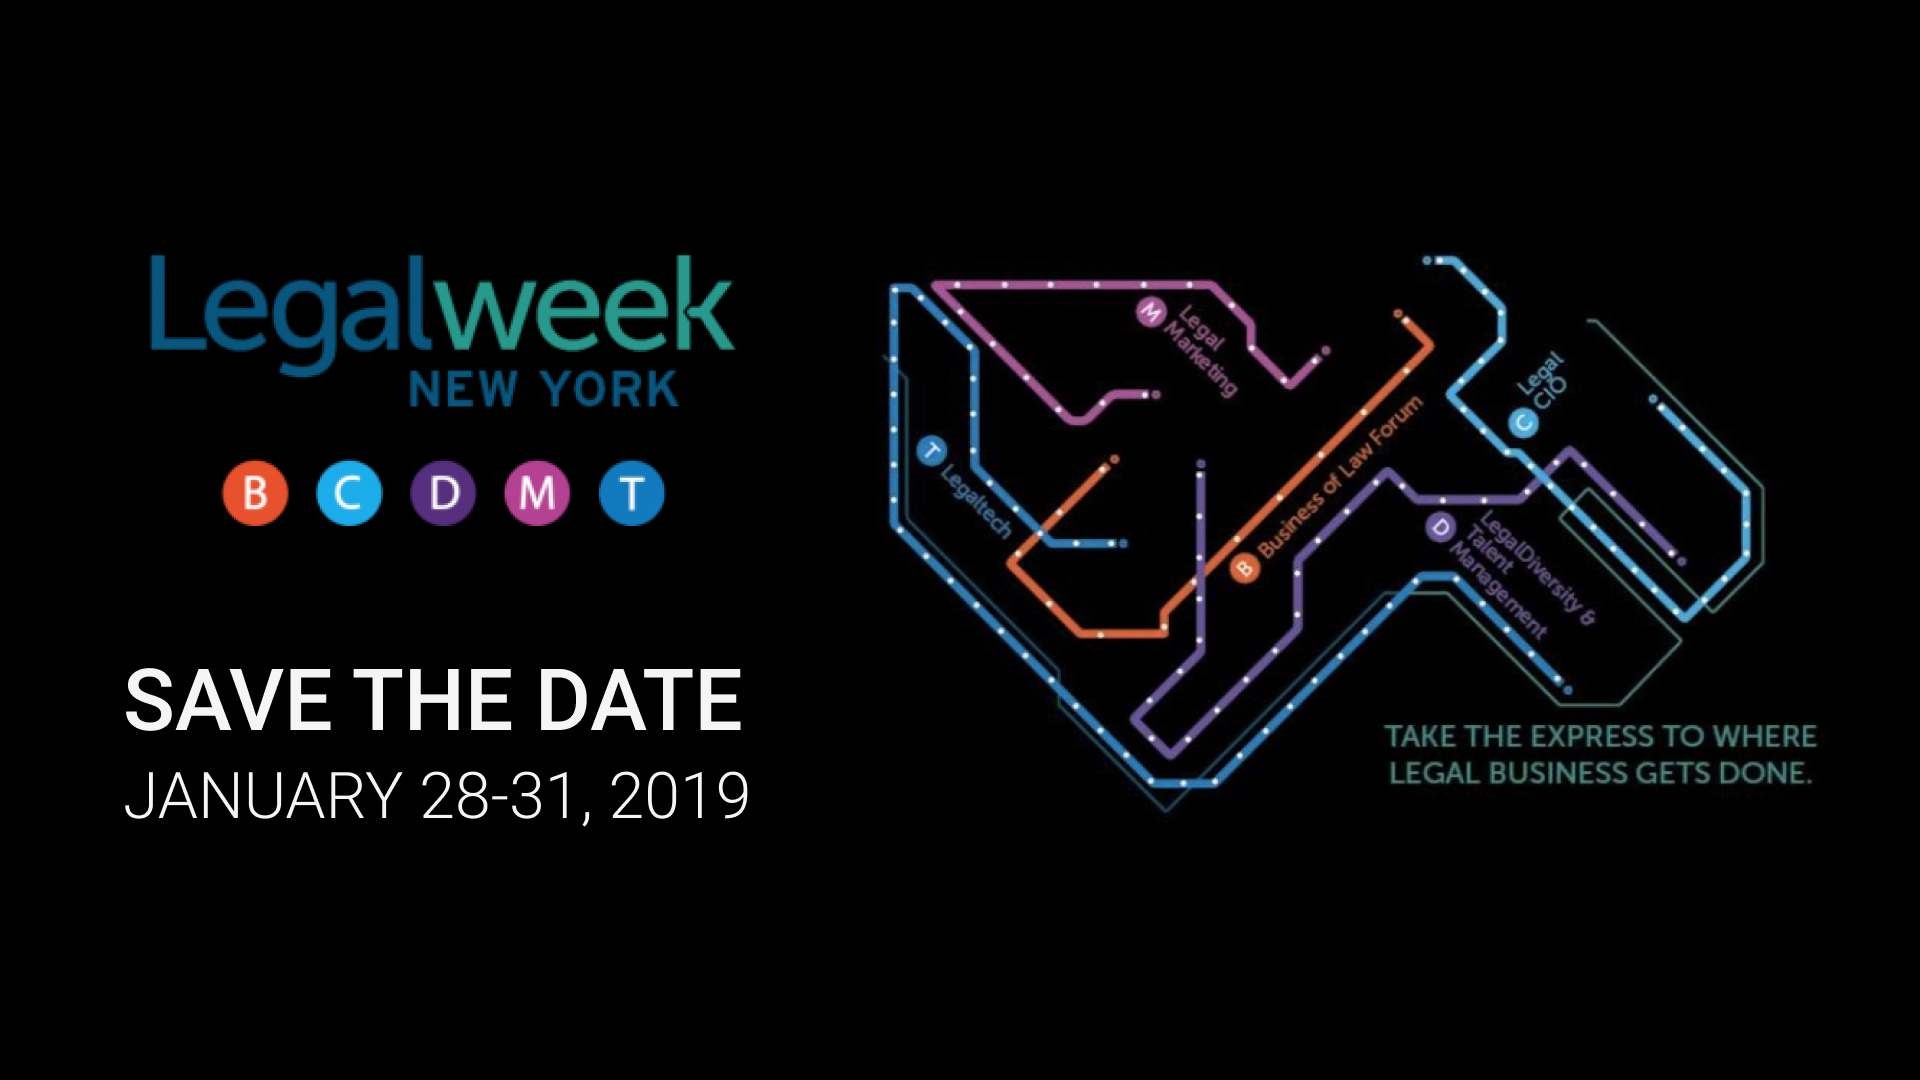 LegalWeek 2018 The Premier Legal Technology & Marketing Conference